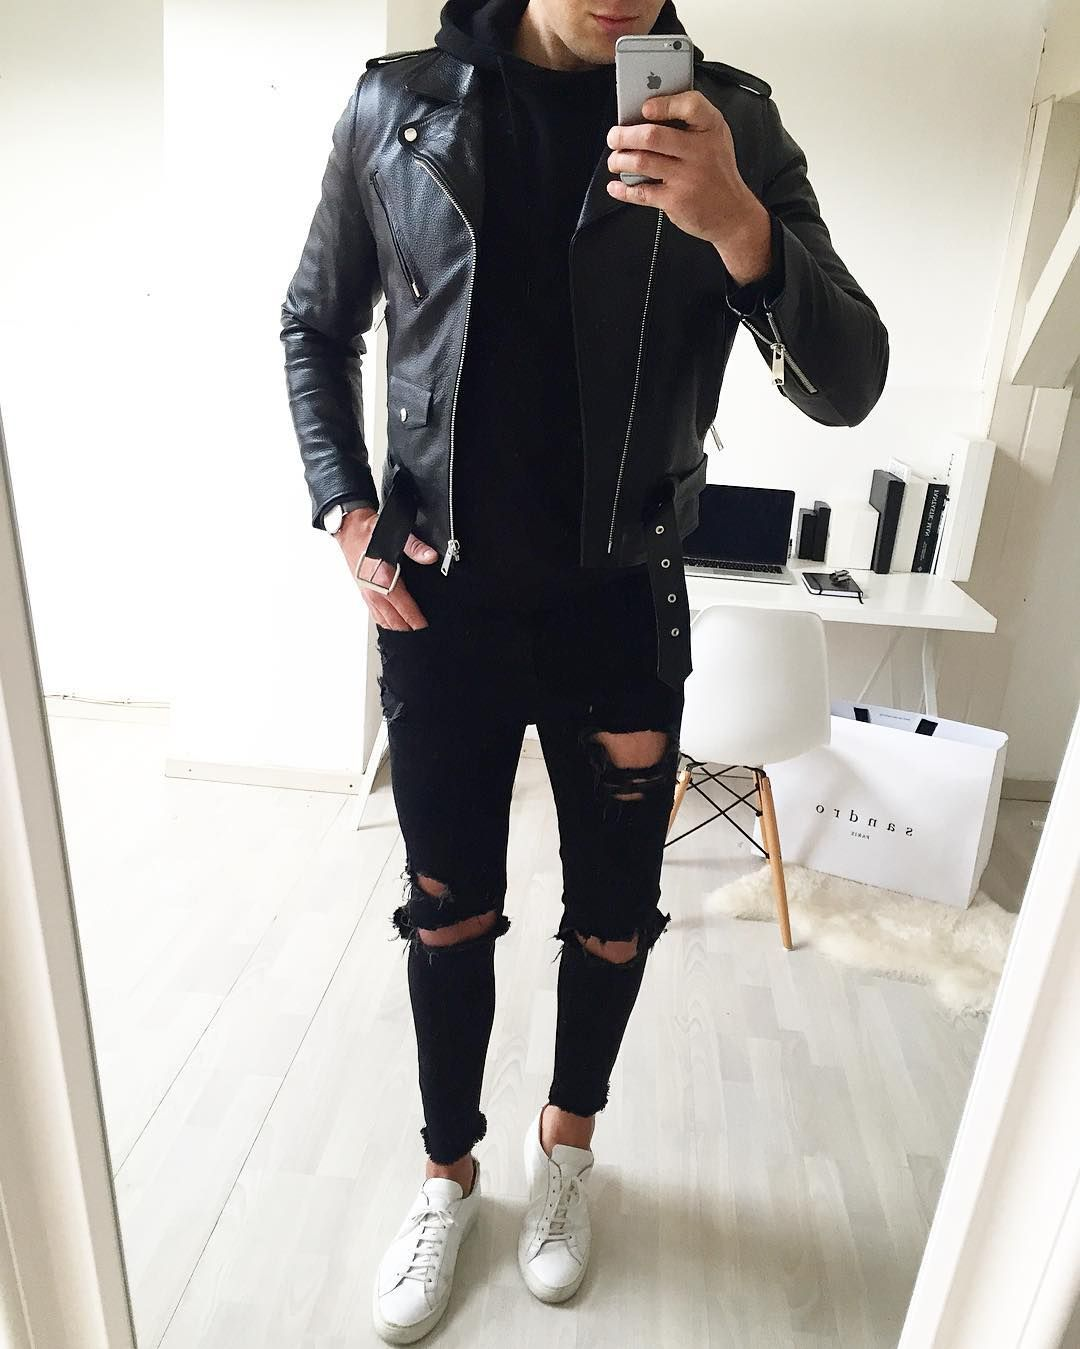 db973bc77532 Leather jacket and black ripped jeans